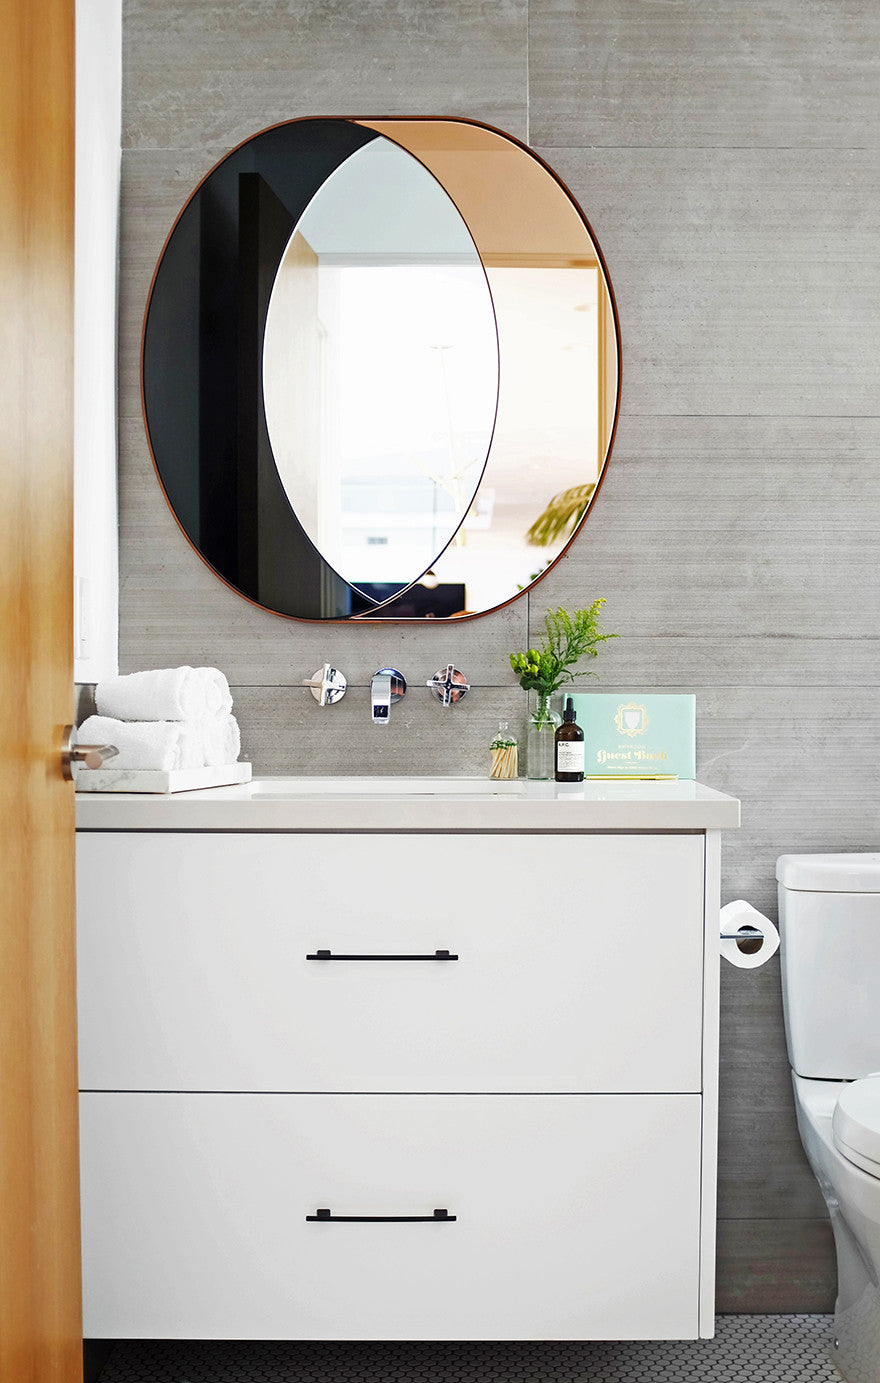 Take a look in the mirror.Interior Design by Consort. Photo: Mat Sanders